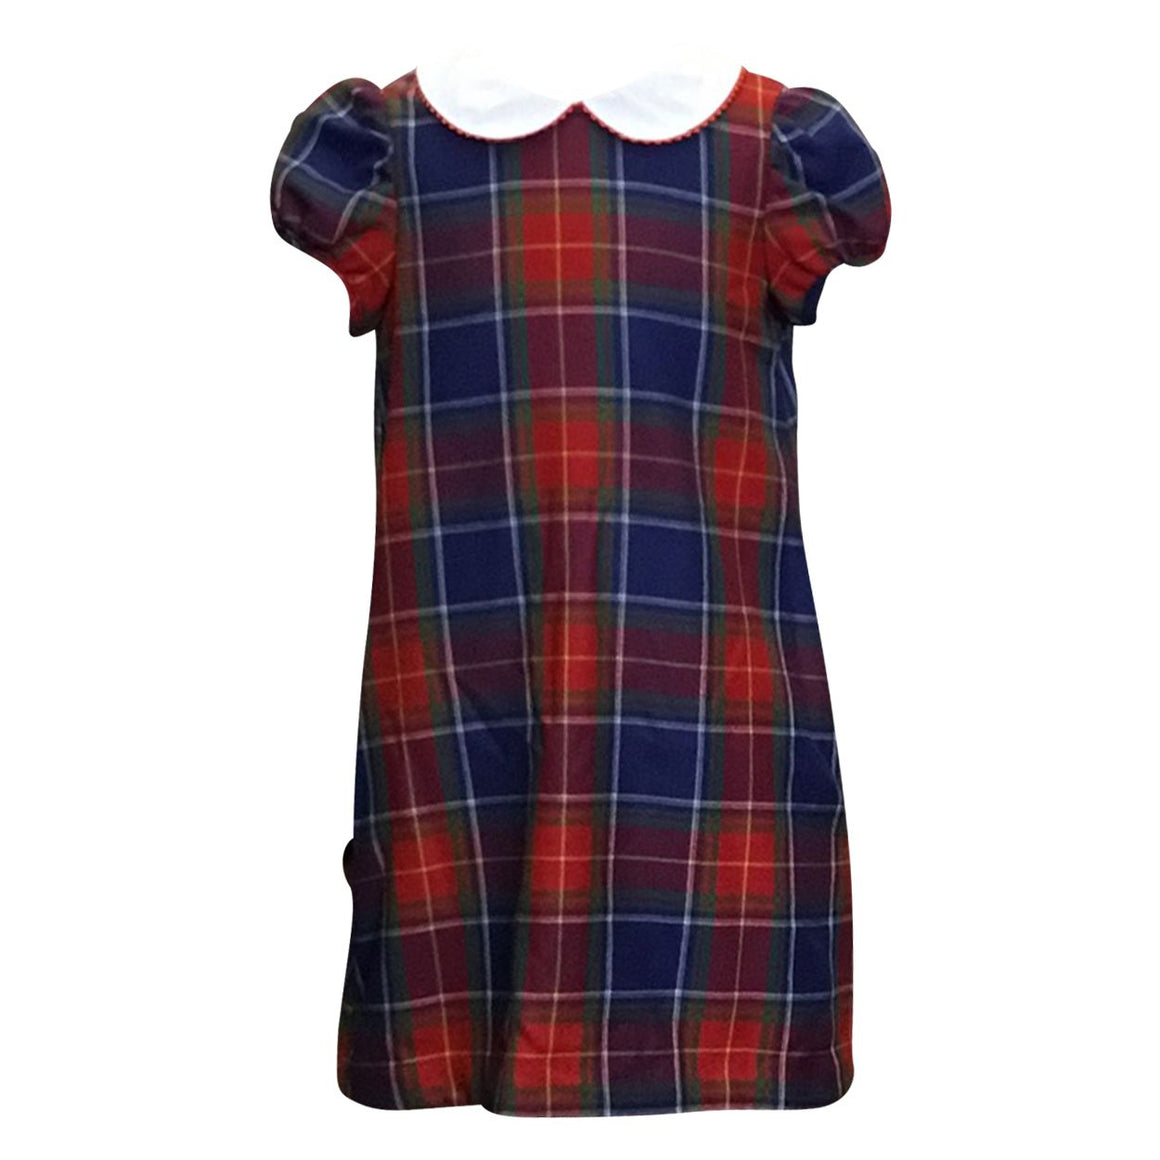 Scottish Plaid Dress with Peter Pan Collar